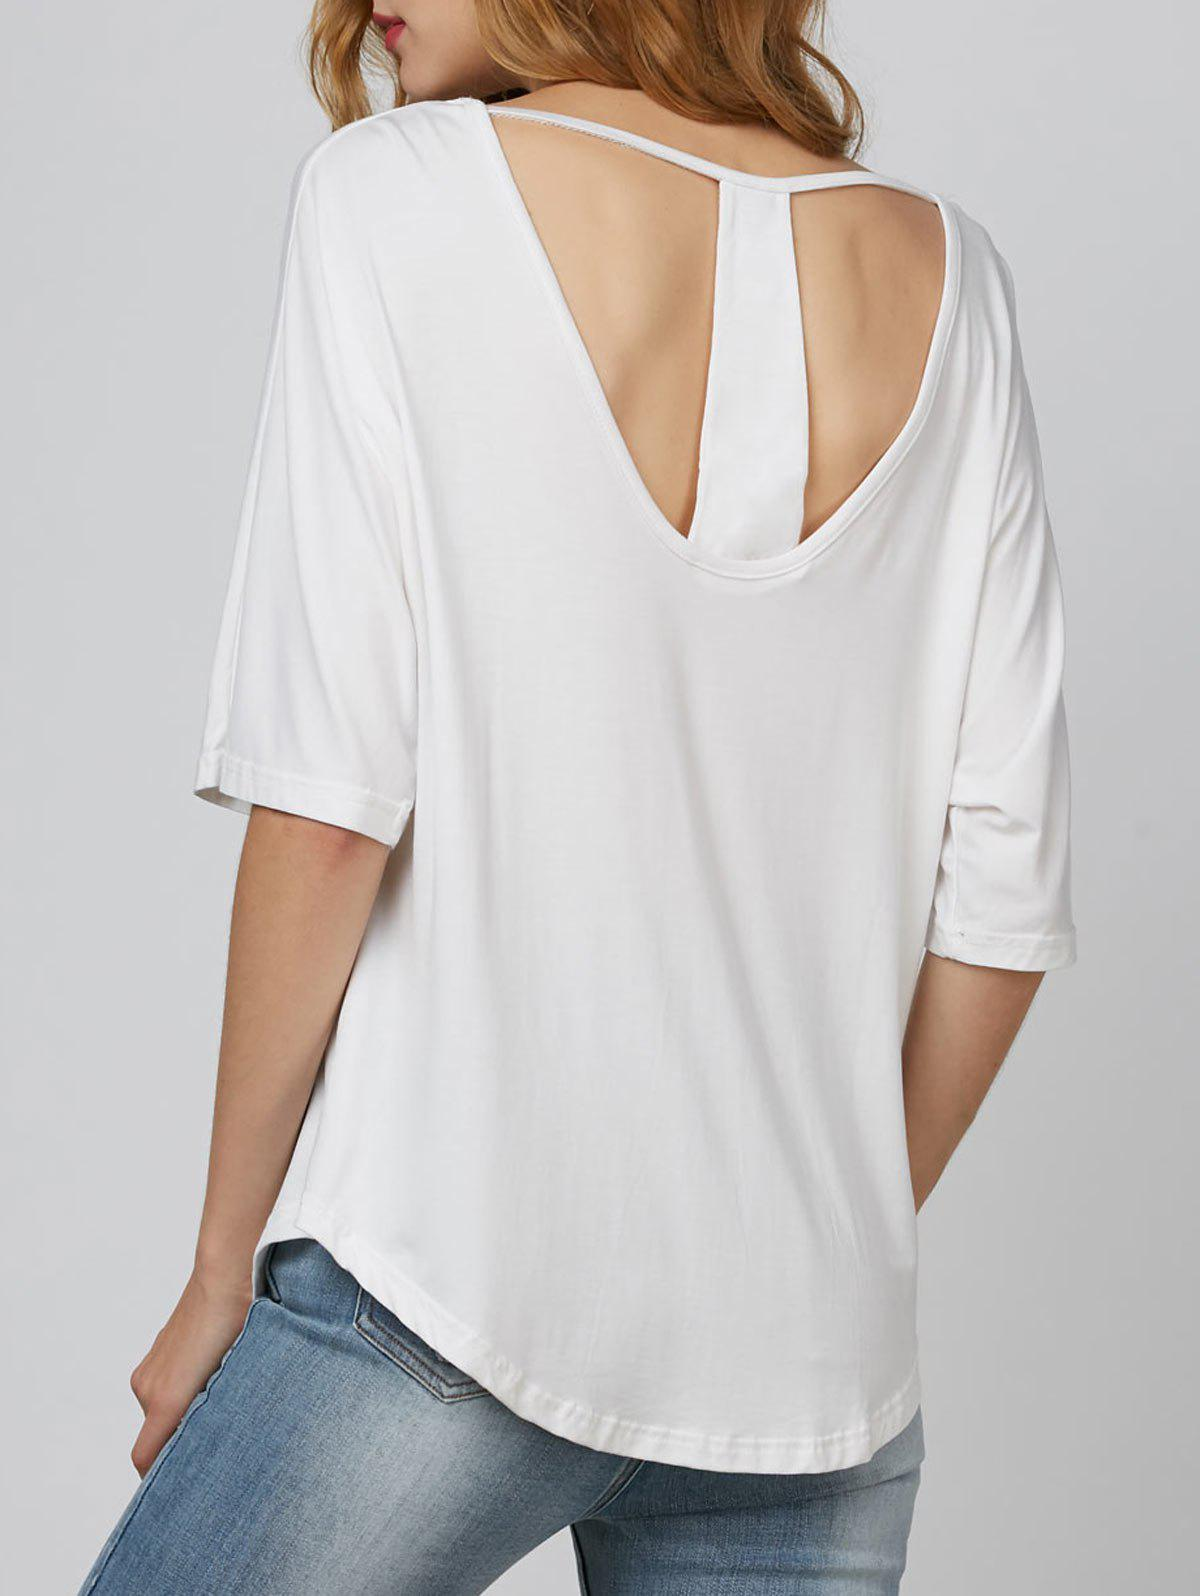 Hot Cut Out Oversized Tee